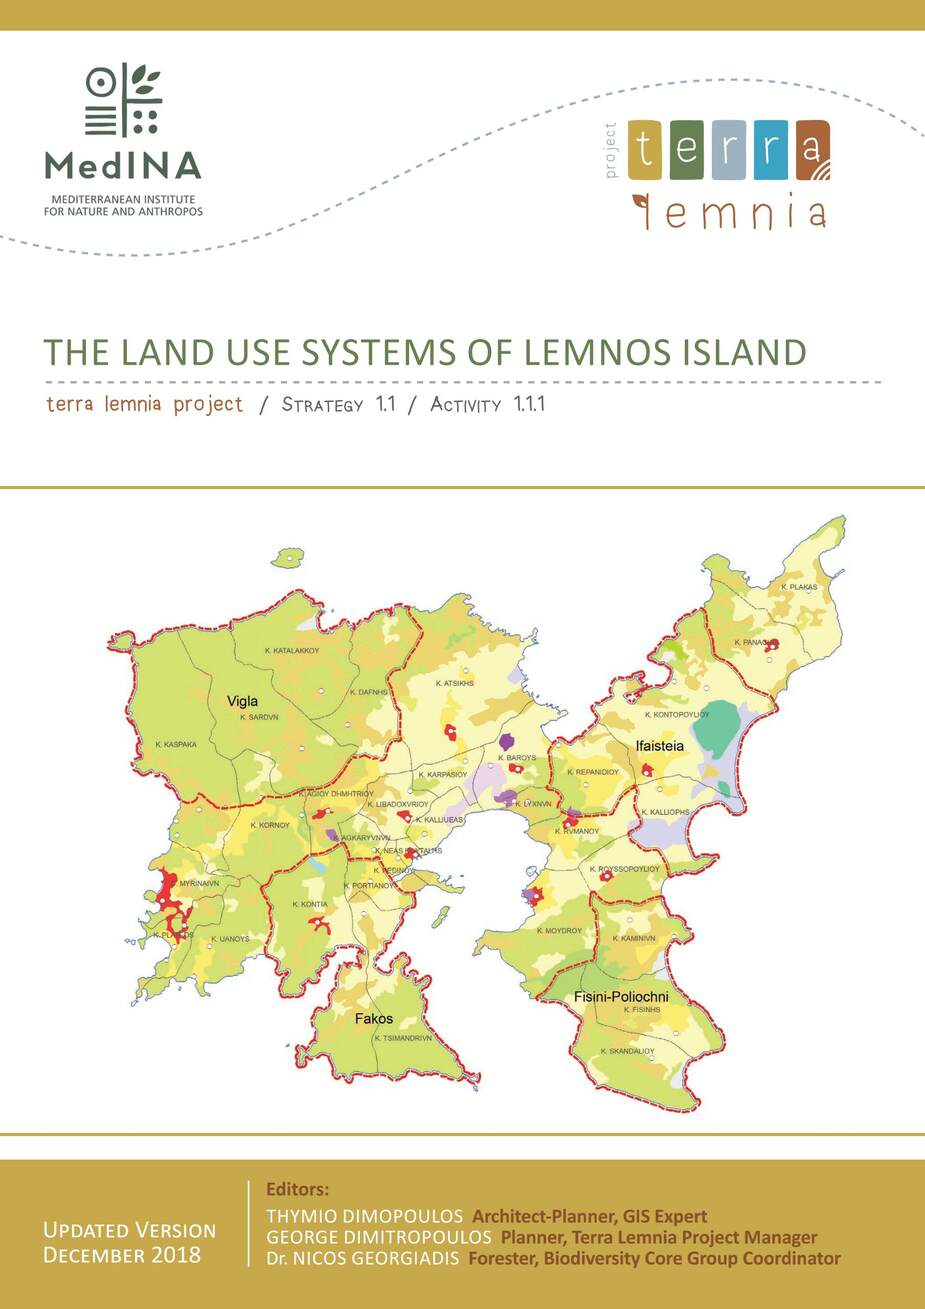 The Land Use Systems of Lemnos Island